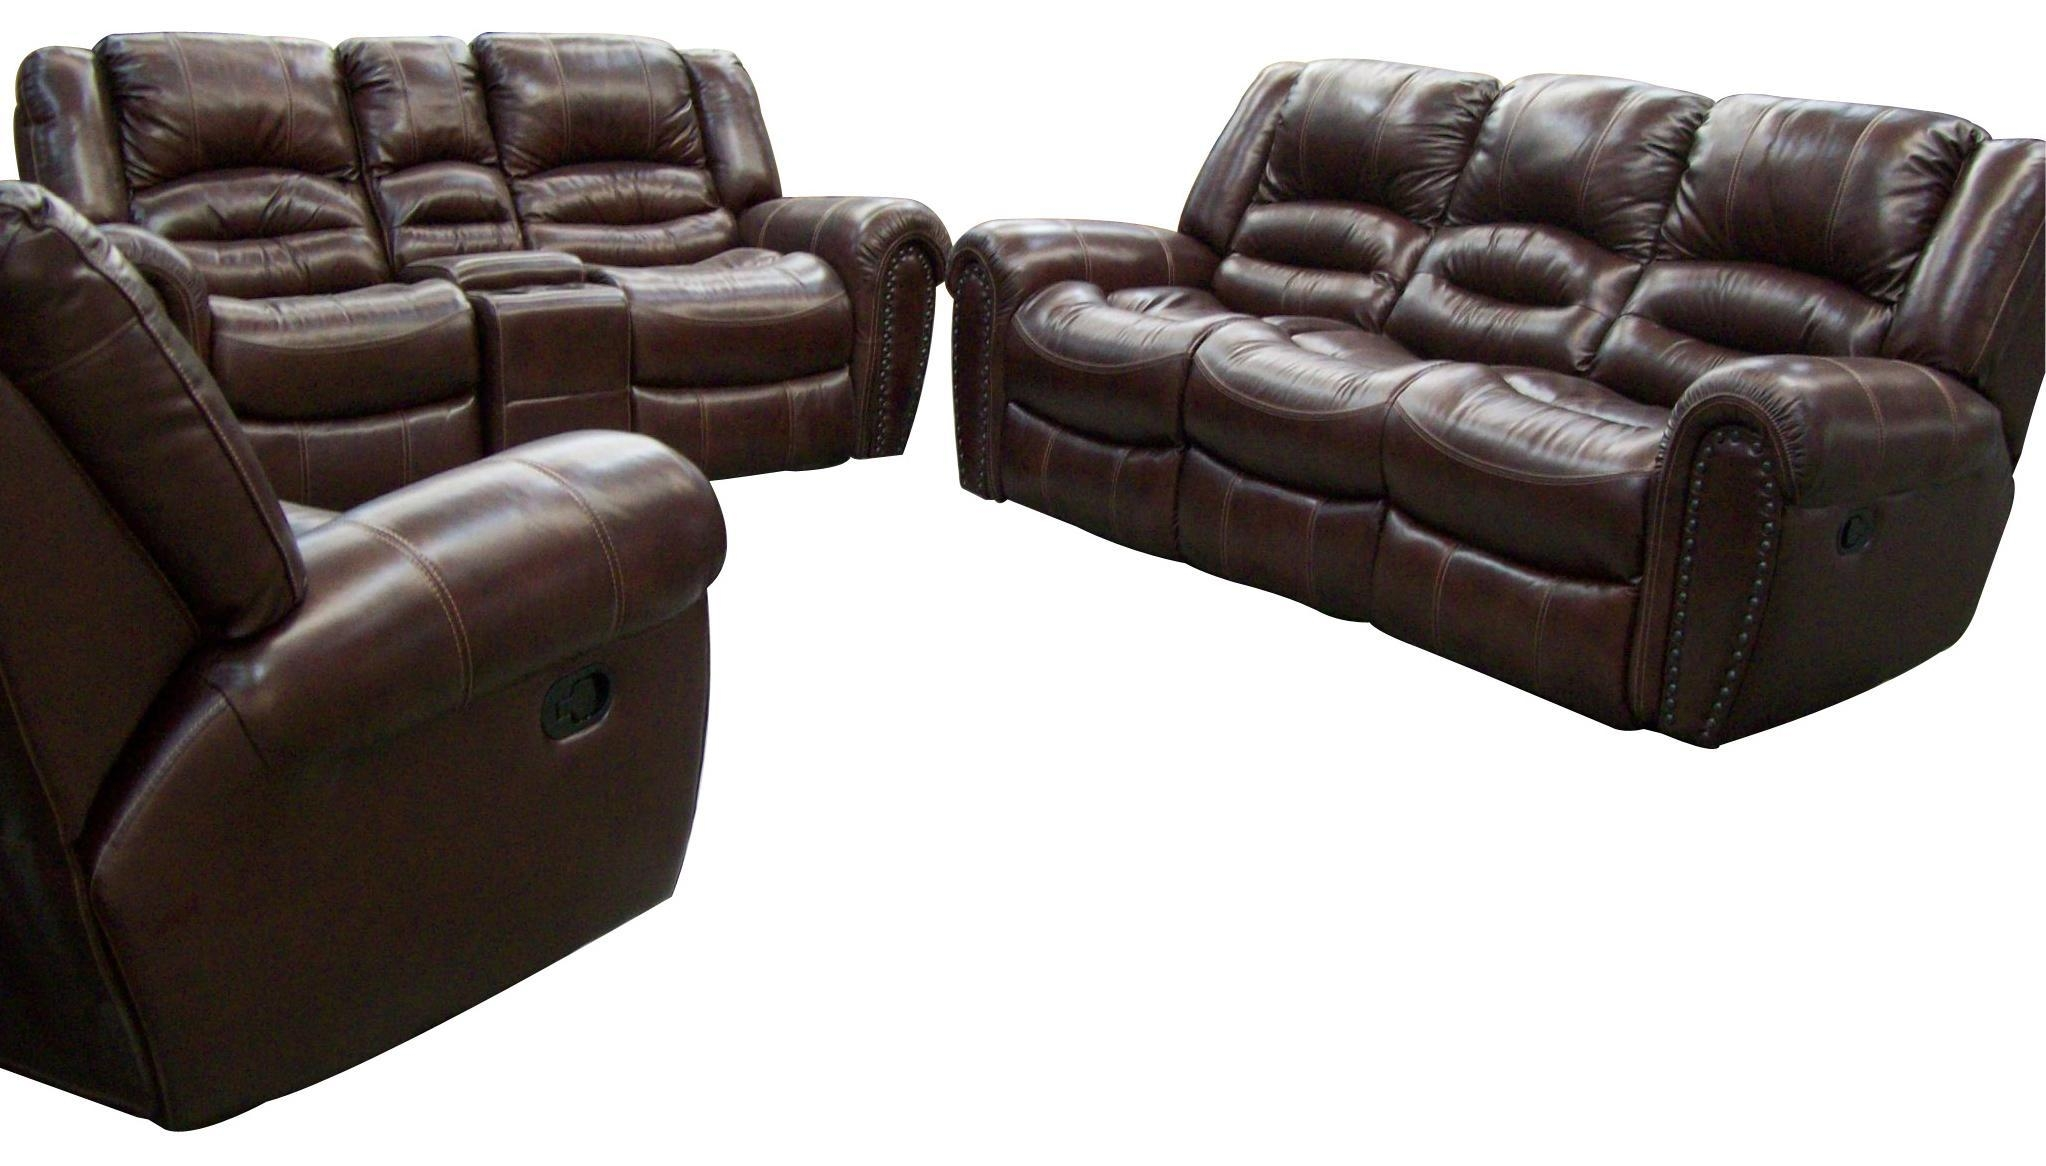 Cheers Sofa – Gallery Image Seniorhomes With Cheers Recliner Sofas (View 7 of 8)